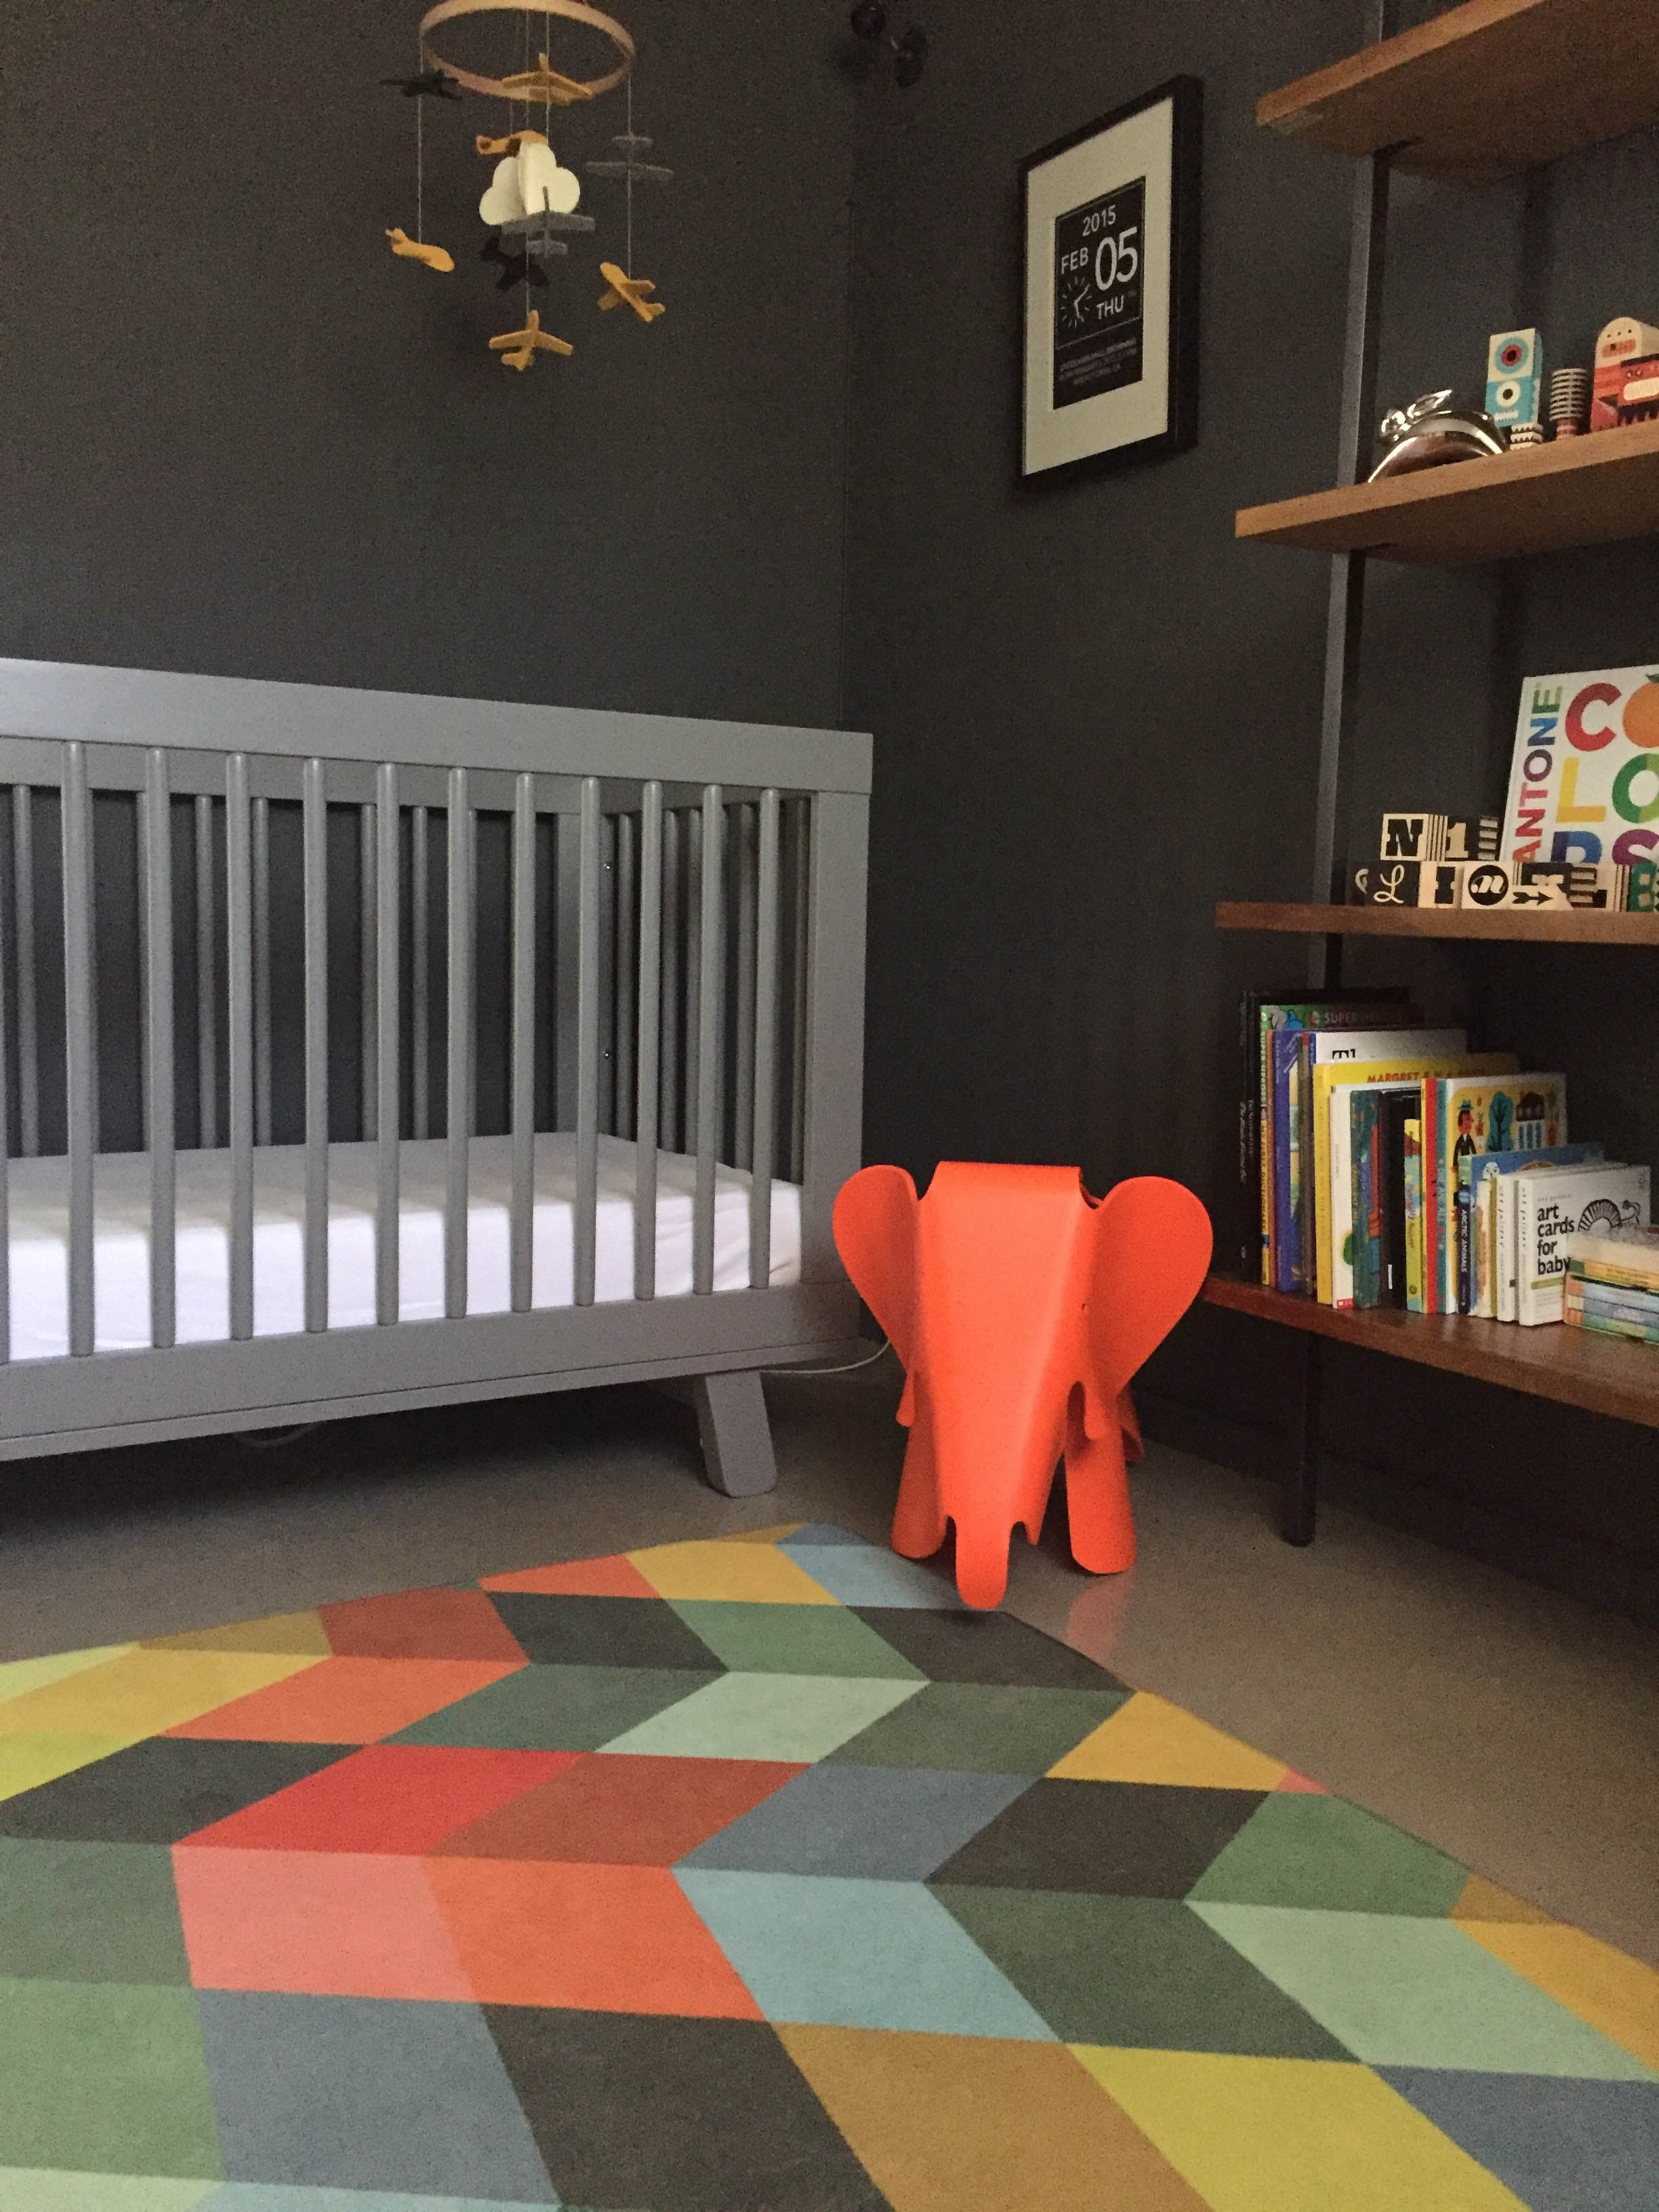 Lincoln's bedroom is a great example of a timeless design that will grow with him. The colourful modern rug softens the space and creates an area for play.